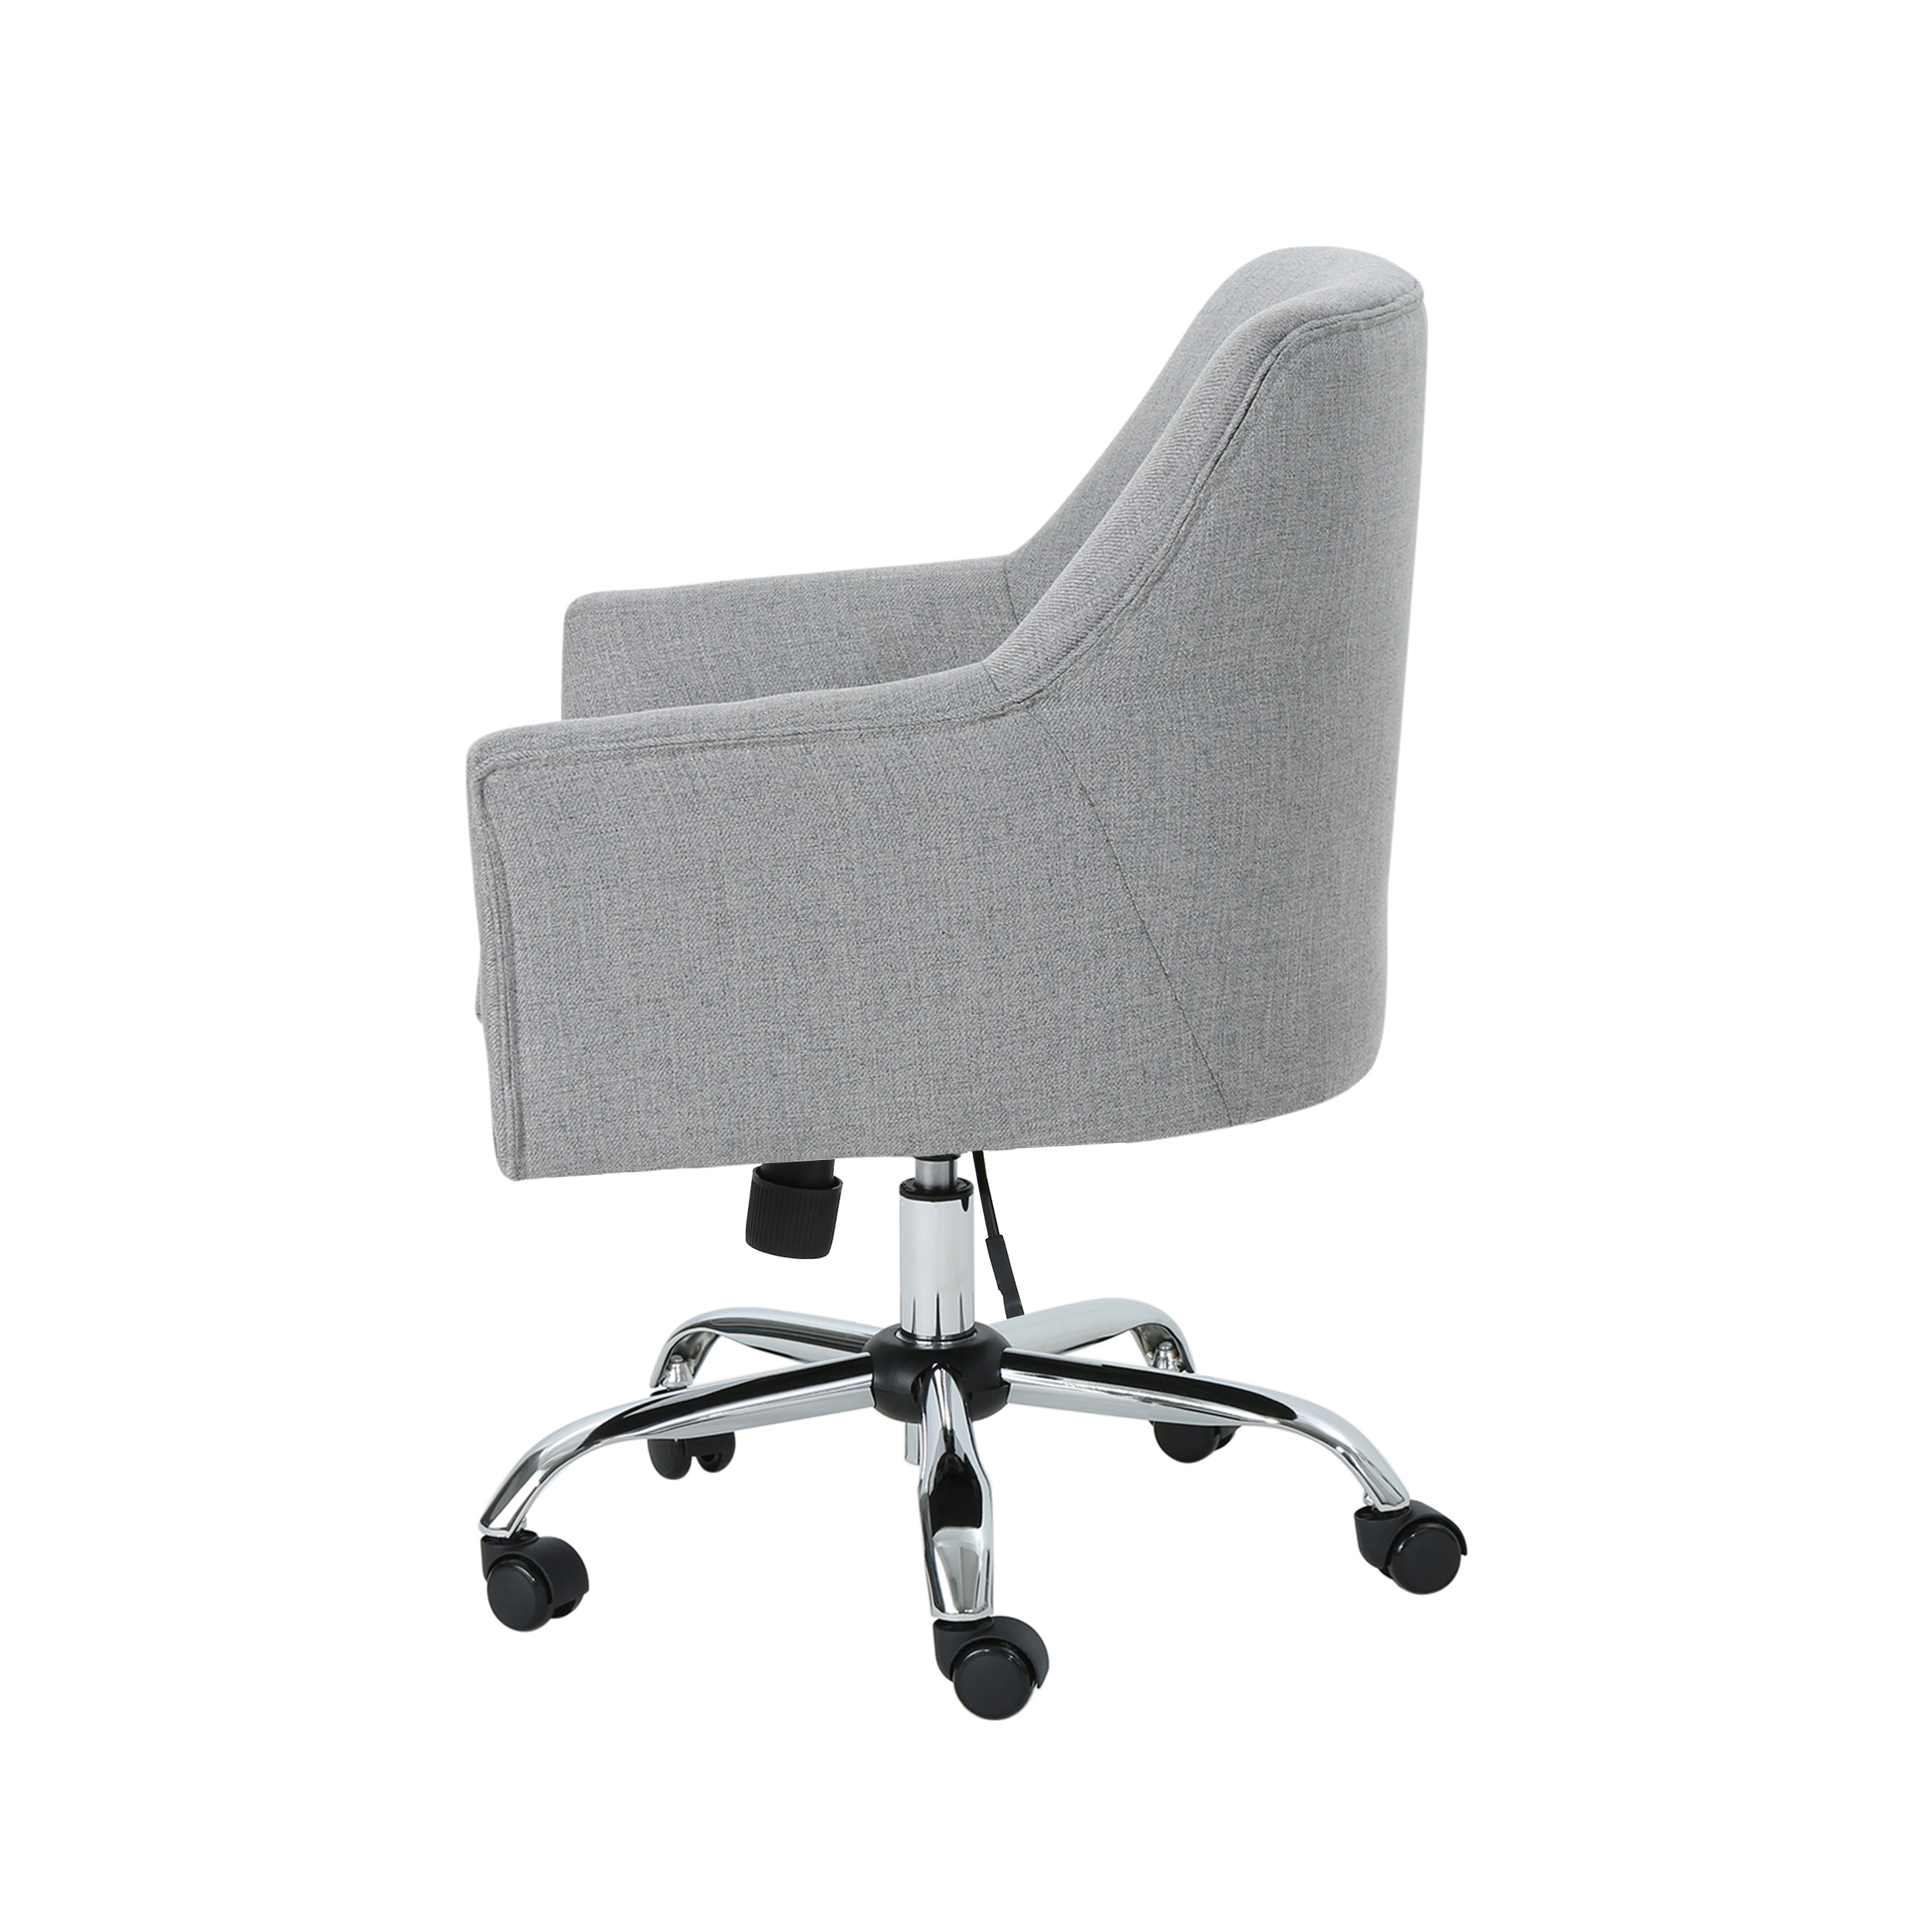 Noble House Dereka Mid Century Modern Fabric Home Office Chair With Chrome Base Gray Walmart Com Walmart Com